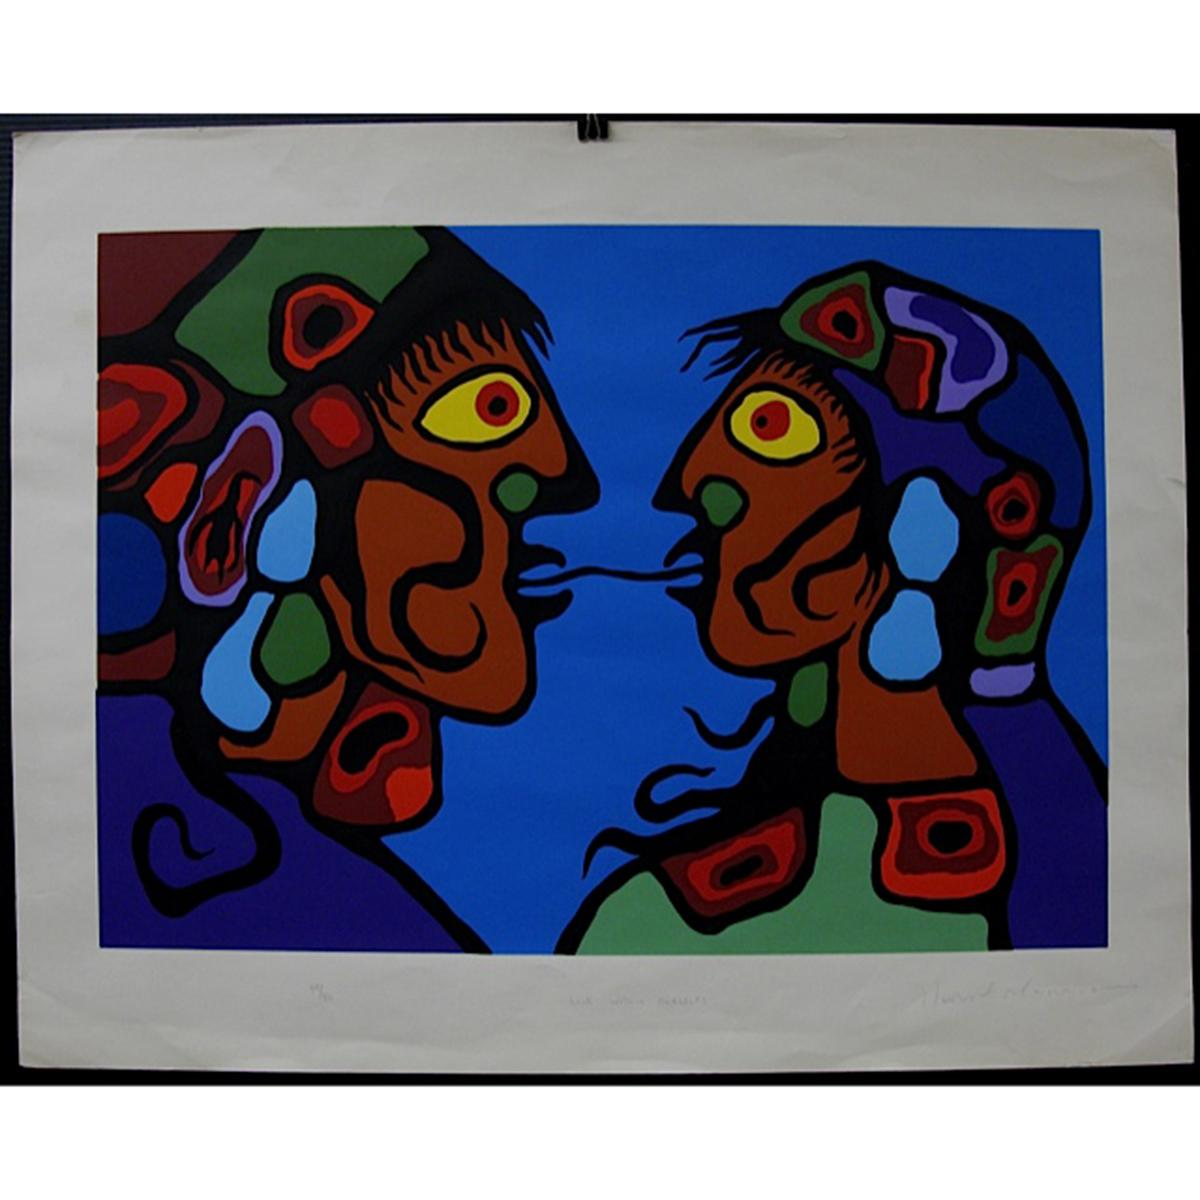 NORVAL MORRISSEAU (NATIVE CANADIAN, 1932-2007)